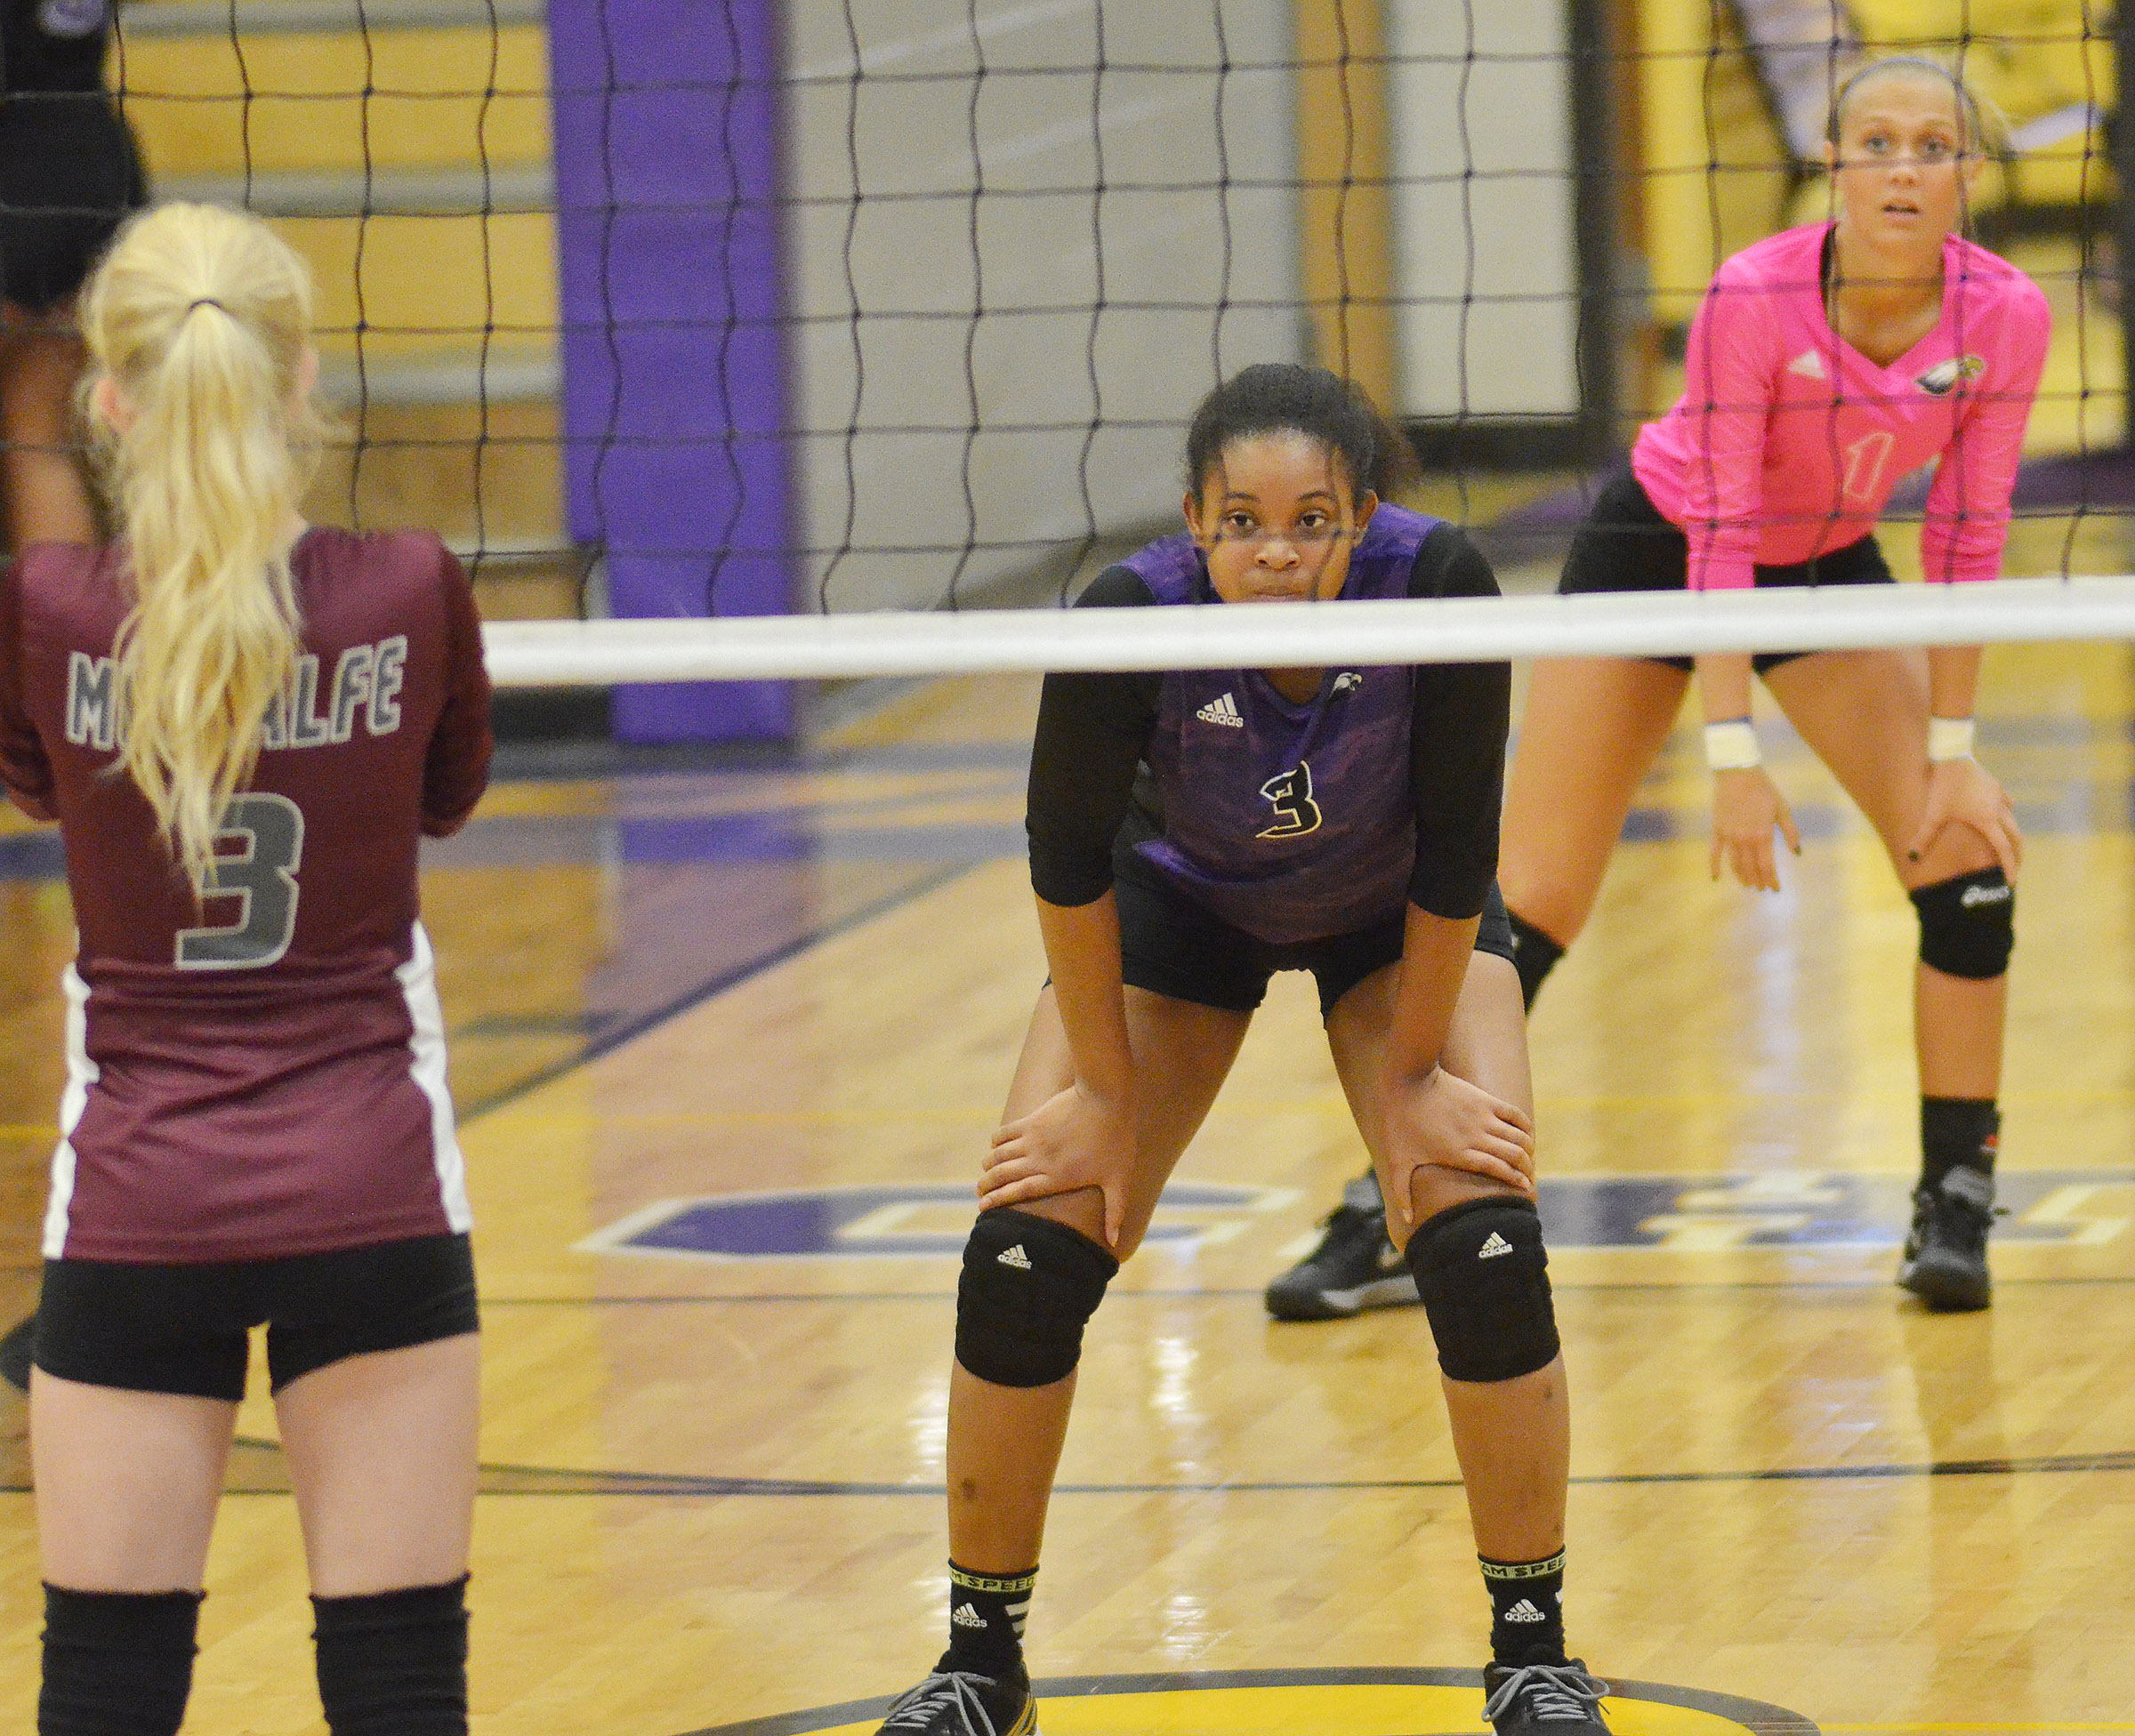 CHS senior Vonnea Smith gets ready for the serve.